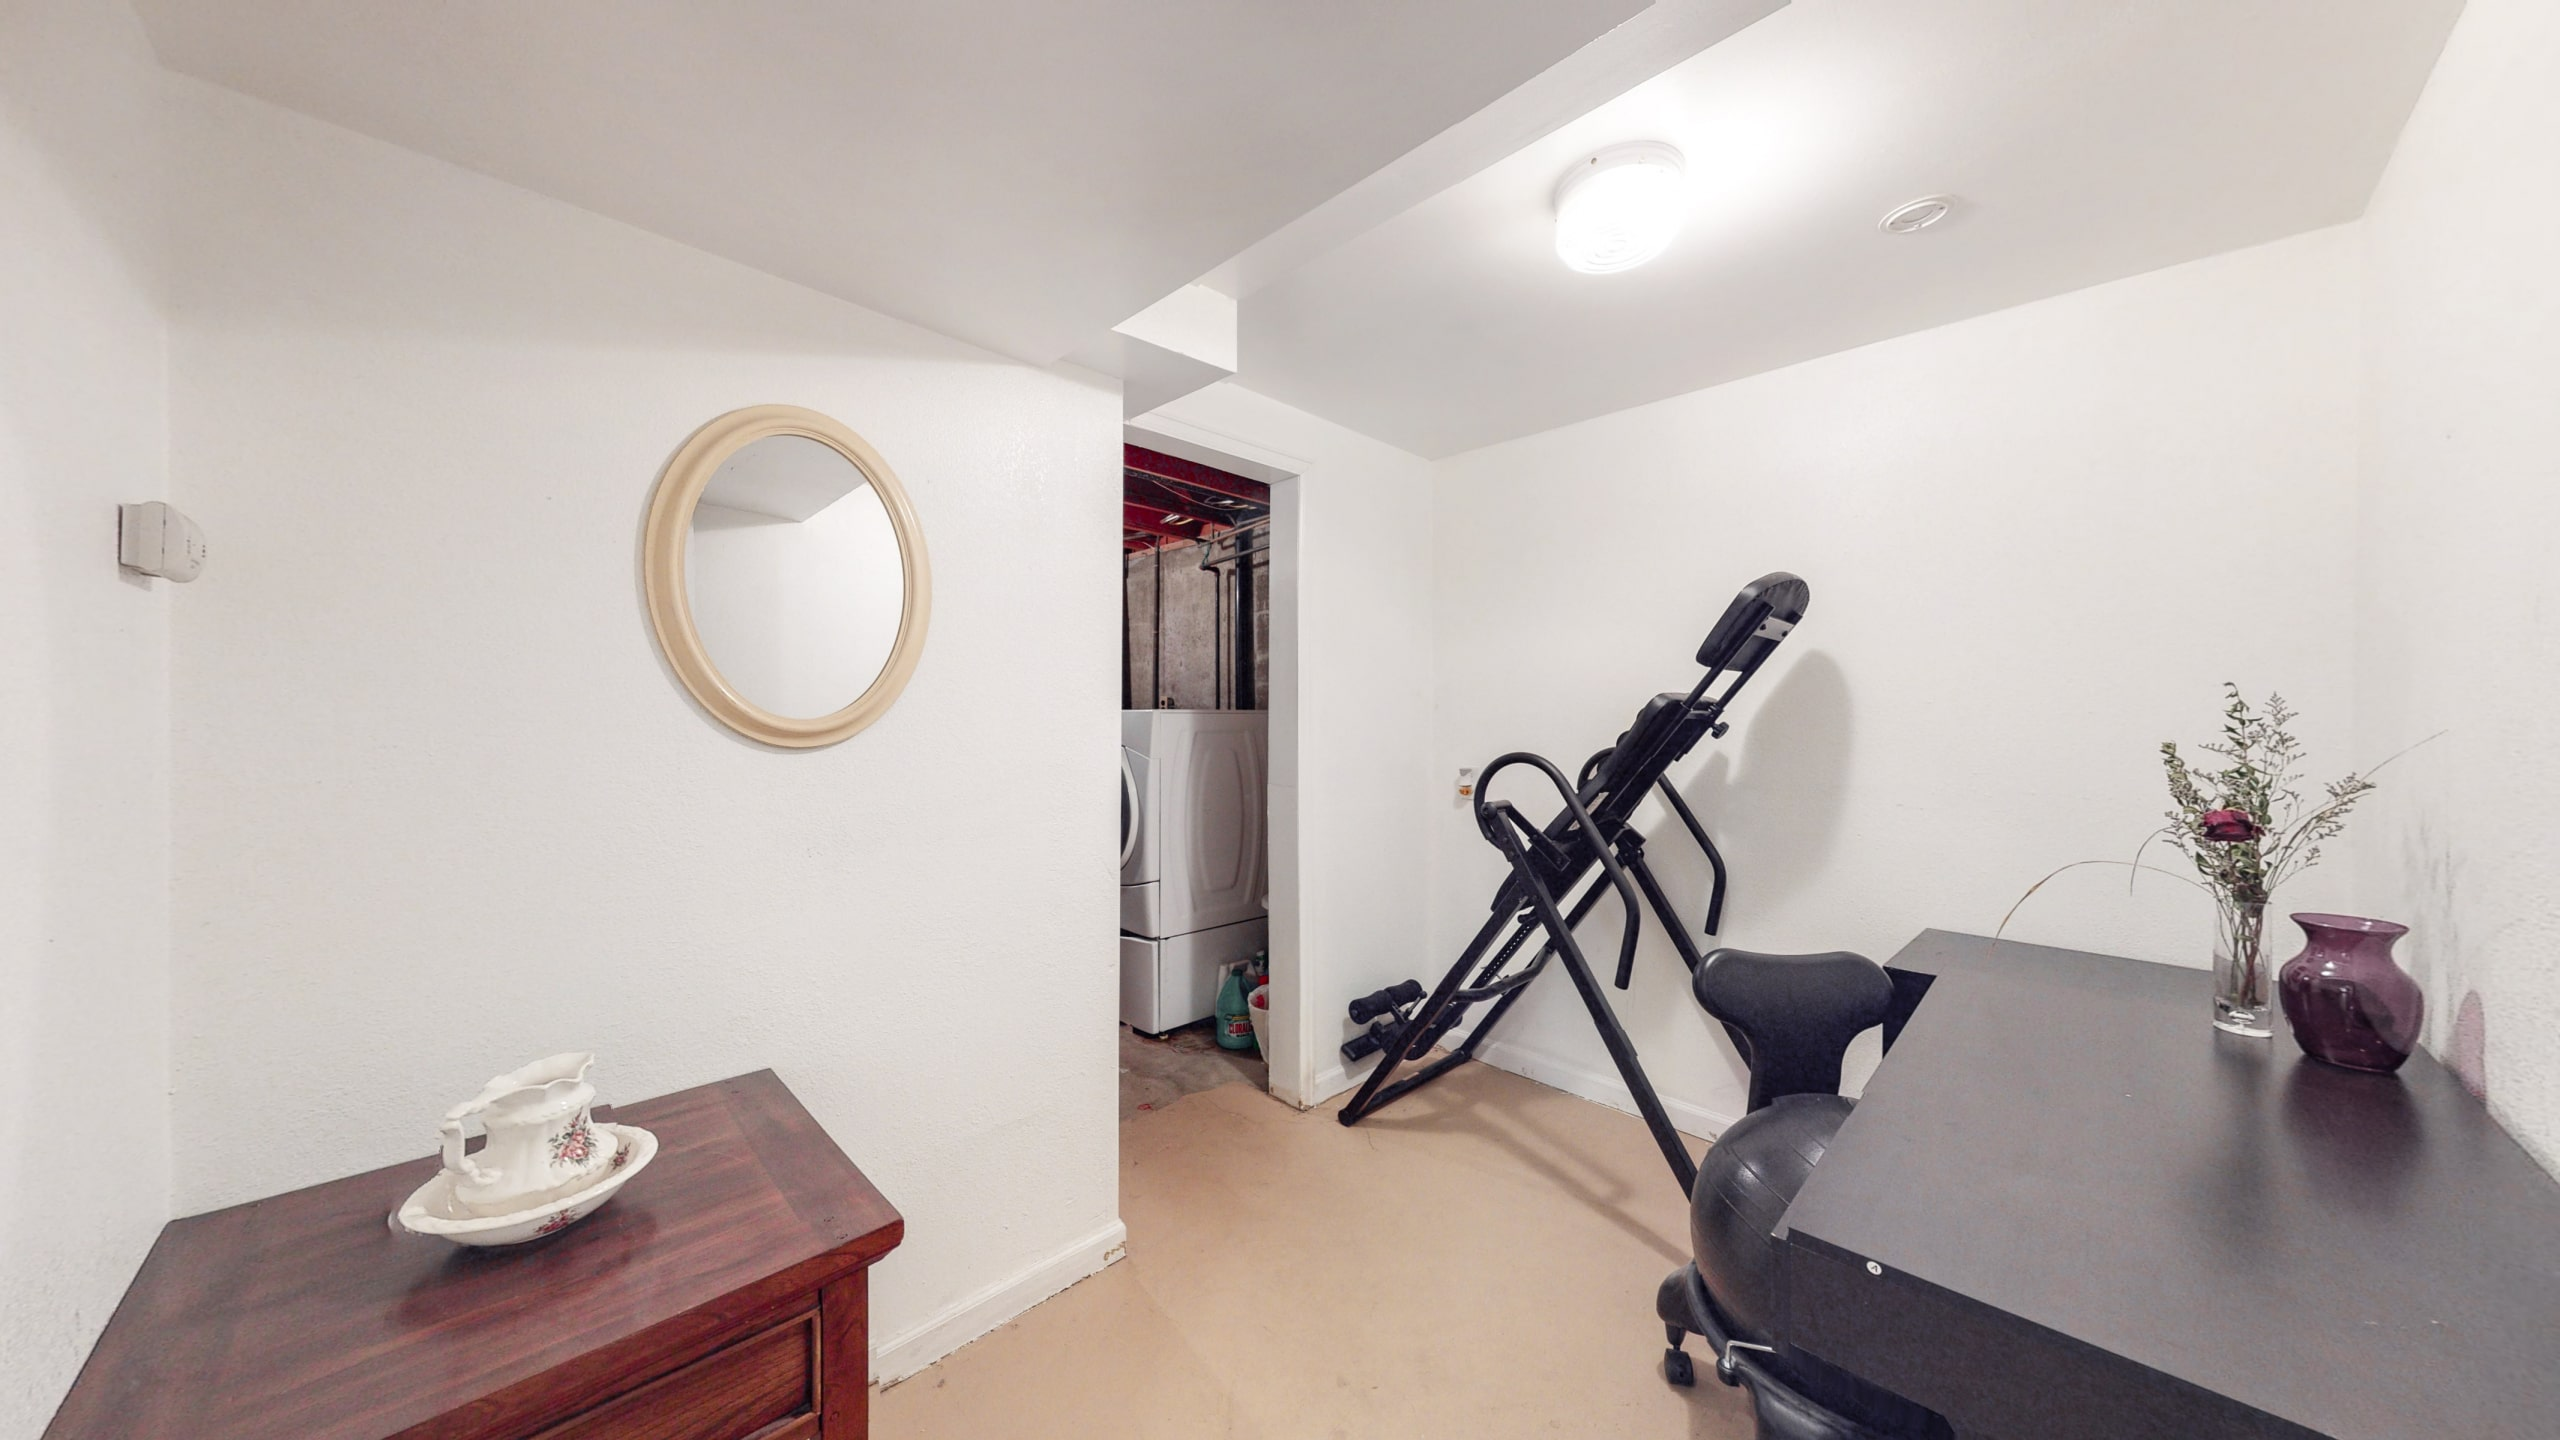 Arvada Home For Sale, Office, Flex, Zoom Space, Desk, White Walls